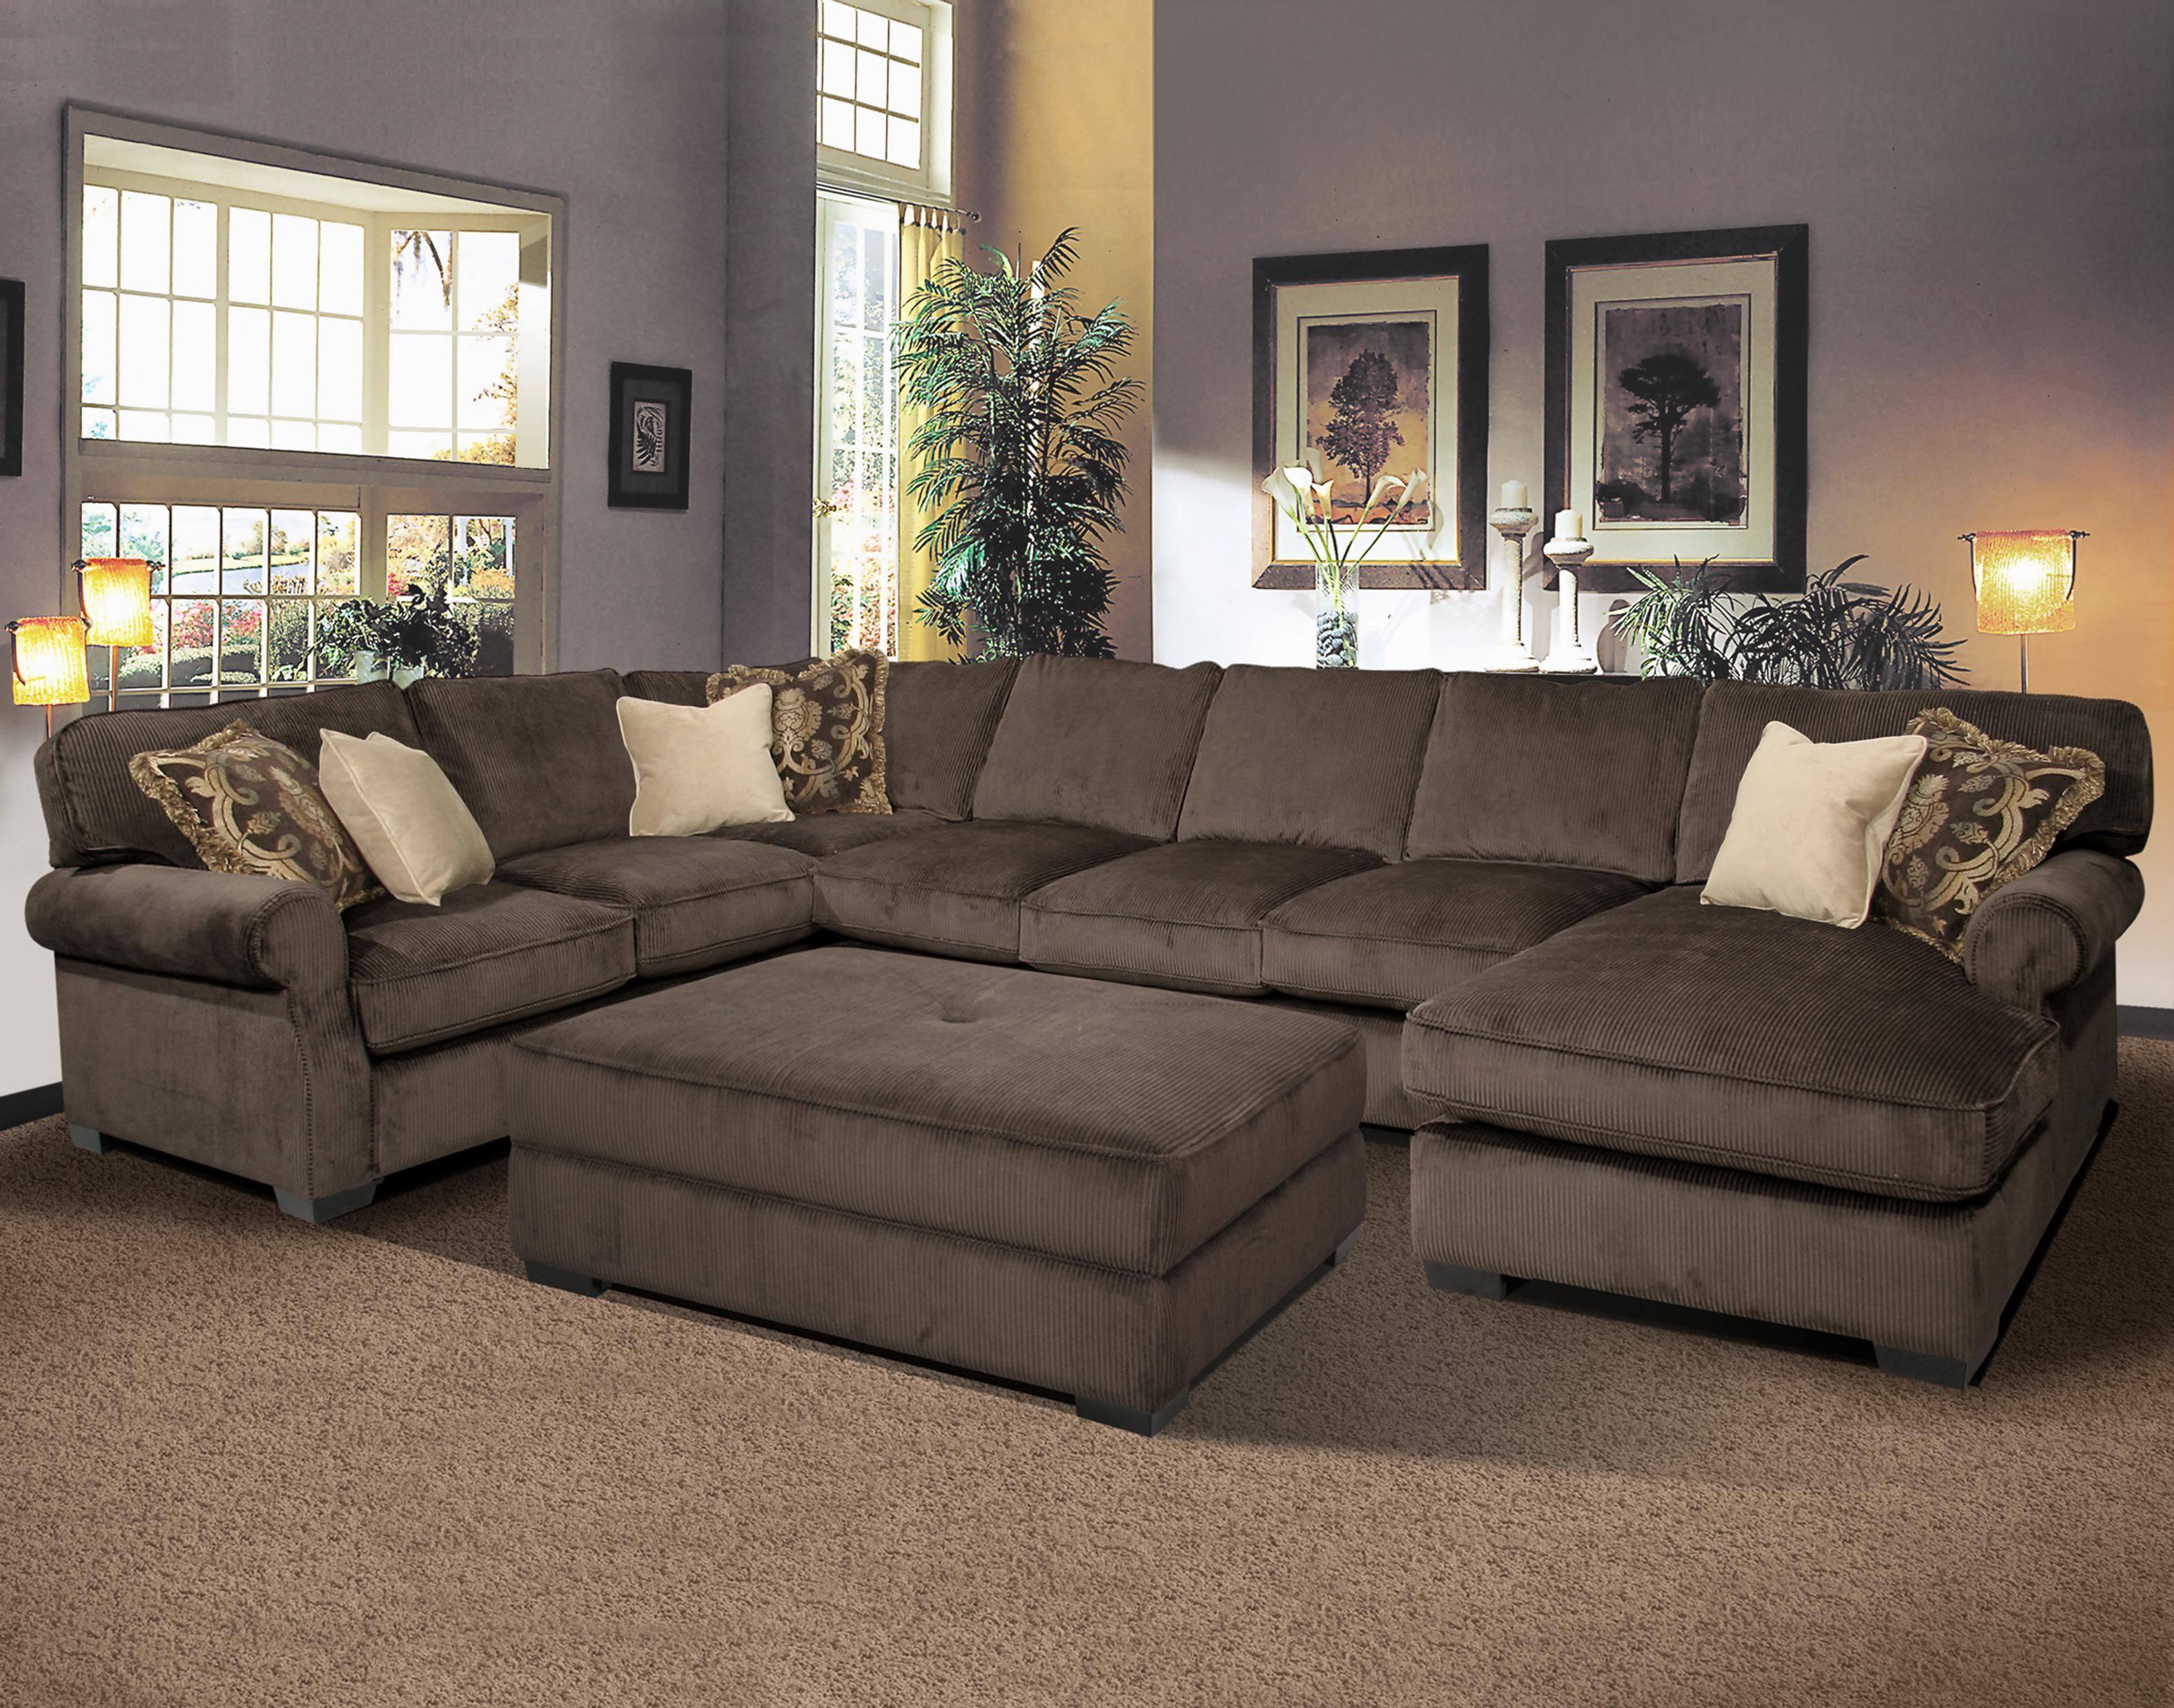 25 Best Ideas About Comfy Sectional On Pinterest With Comfy Sectional Sofa  (#1 of